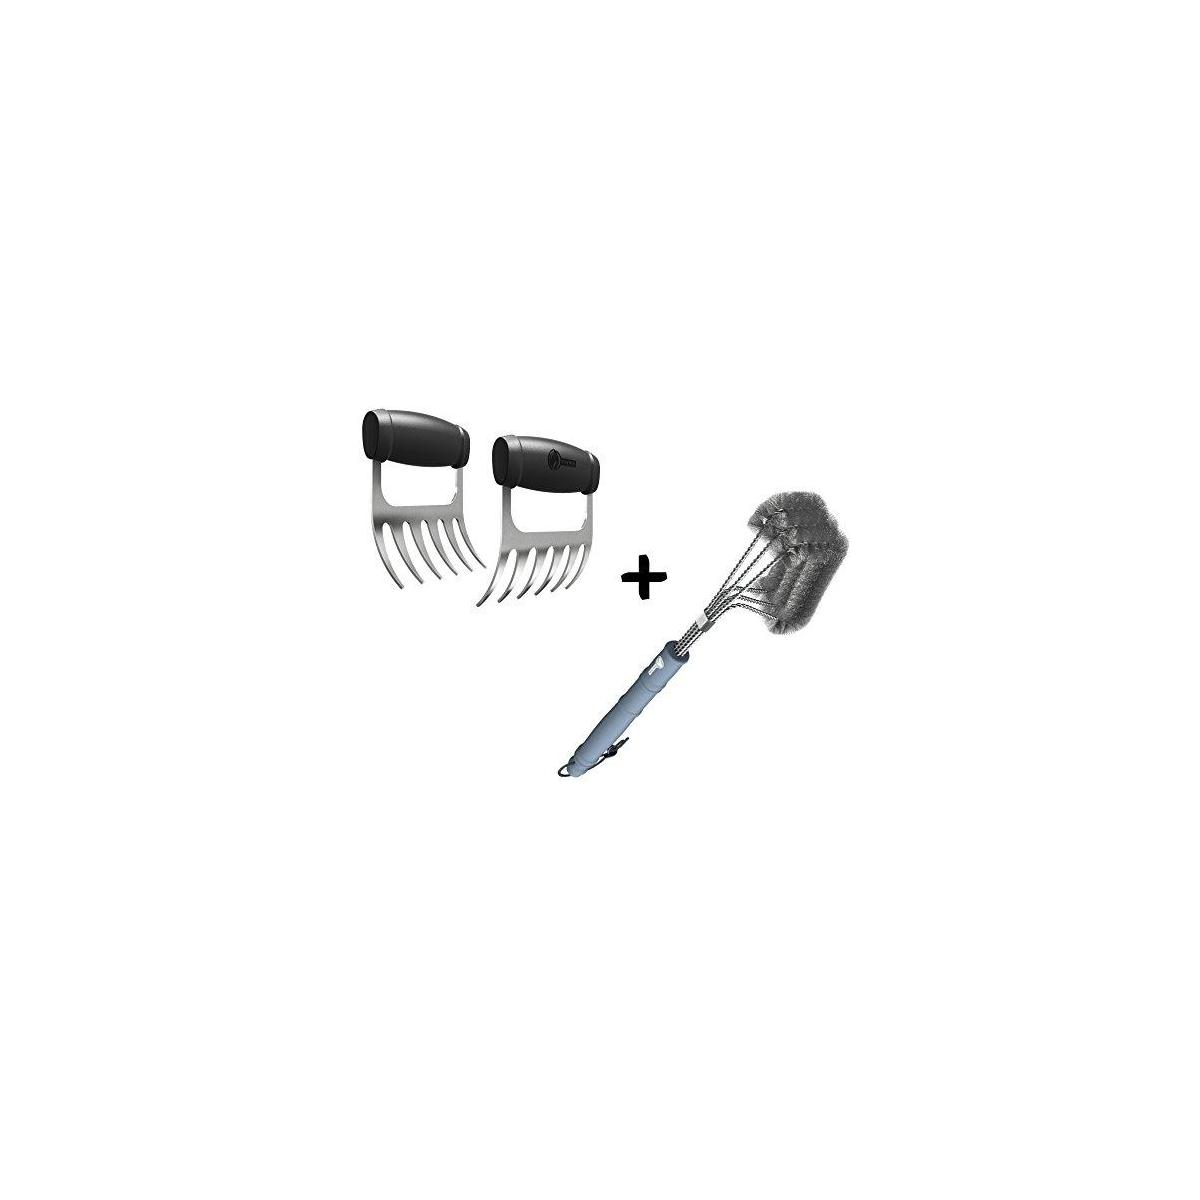 Meat Claws - Stainless Steel Pulled Pork SHREDDERS + BBQ Grill Brush - 100% Rust Proof Design - Wire Bristle with Strength Clip for Cleaning Char Broil Weber Porcelain and Infrared Barbecue Grates